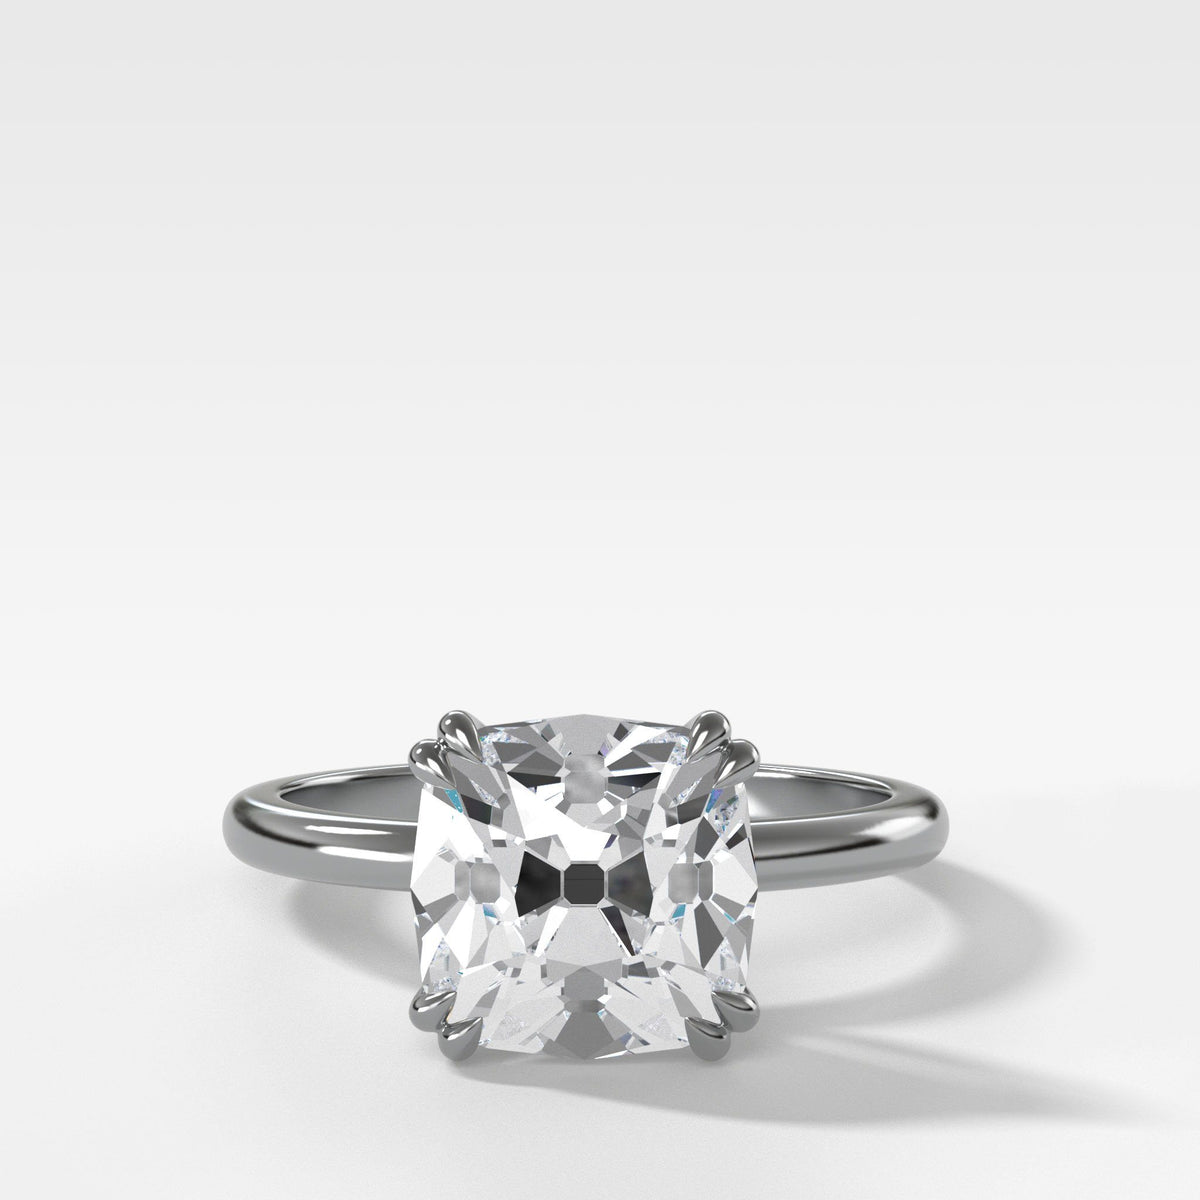 Signature Cathedral Solitaire With Old Mine Cut In White Gold By Good Stone